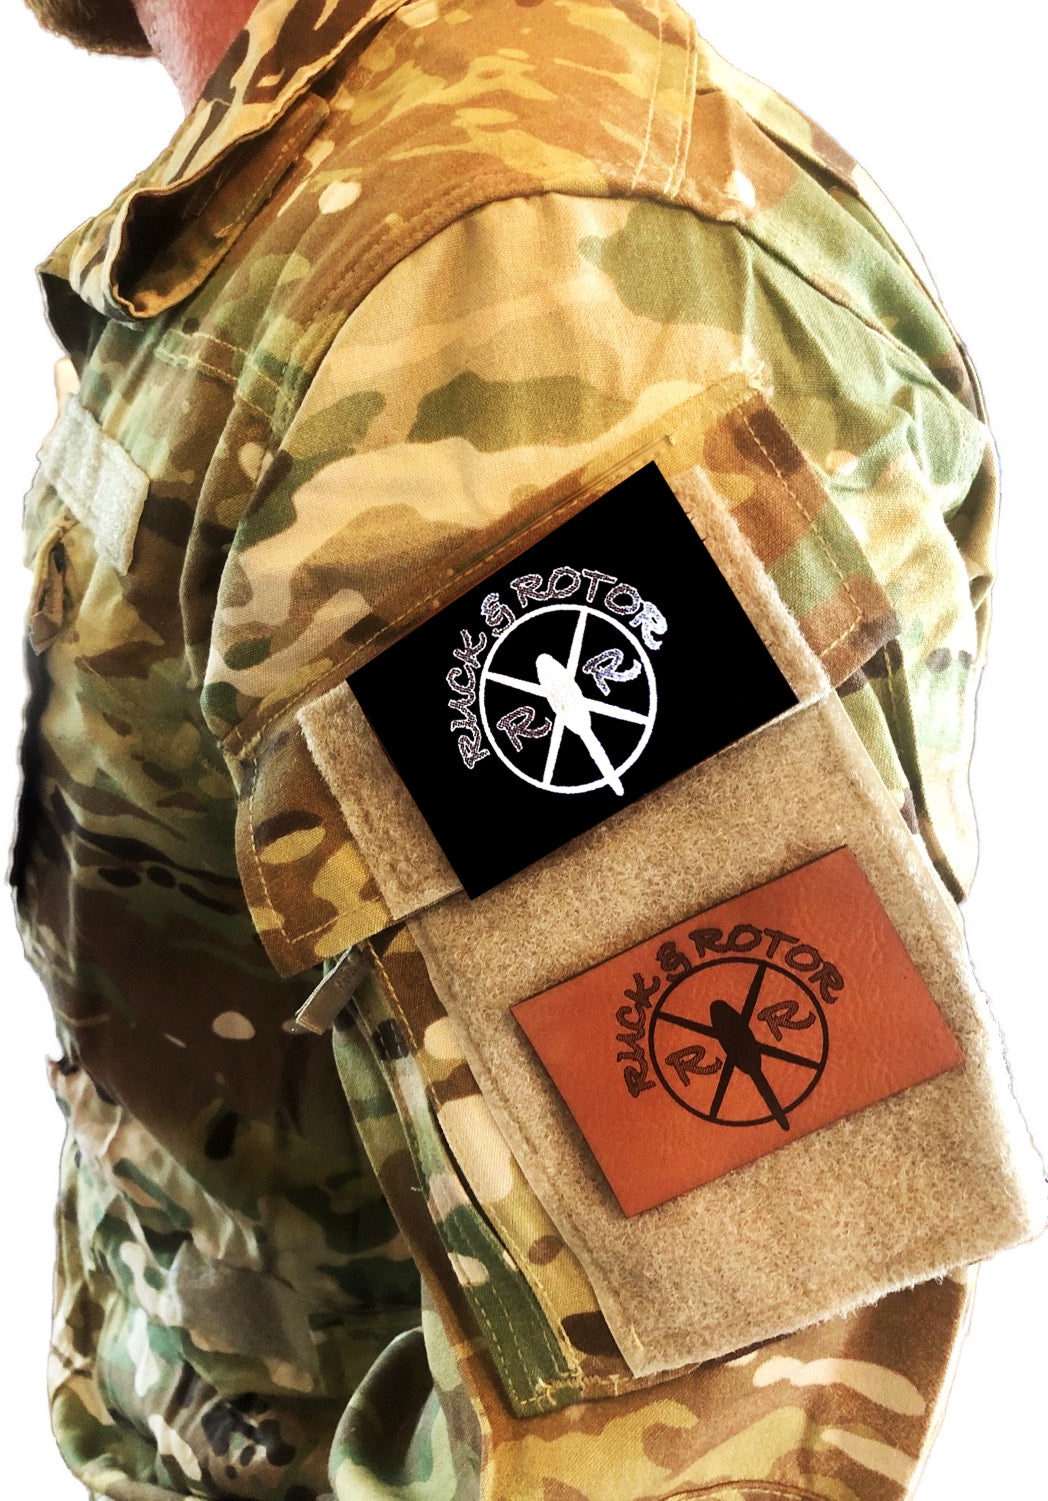 """Ruck & Rotor"" Logo Morale Patch, Leatherette by Ruck & Rotor"